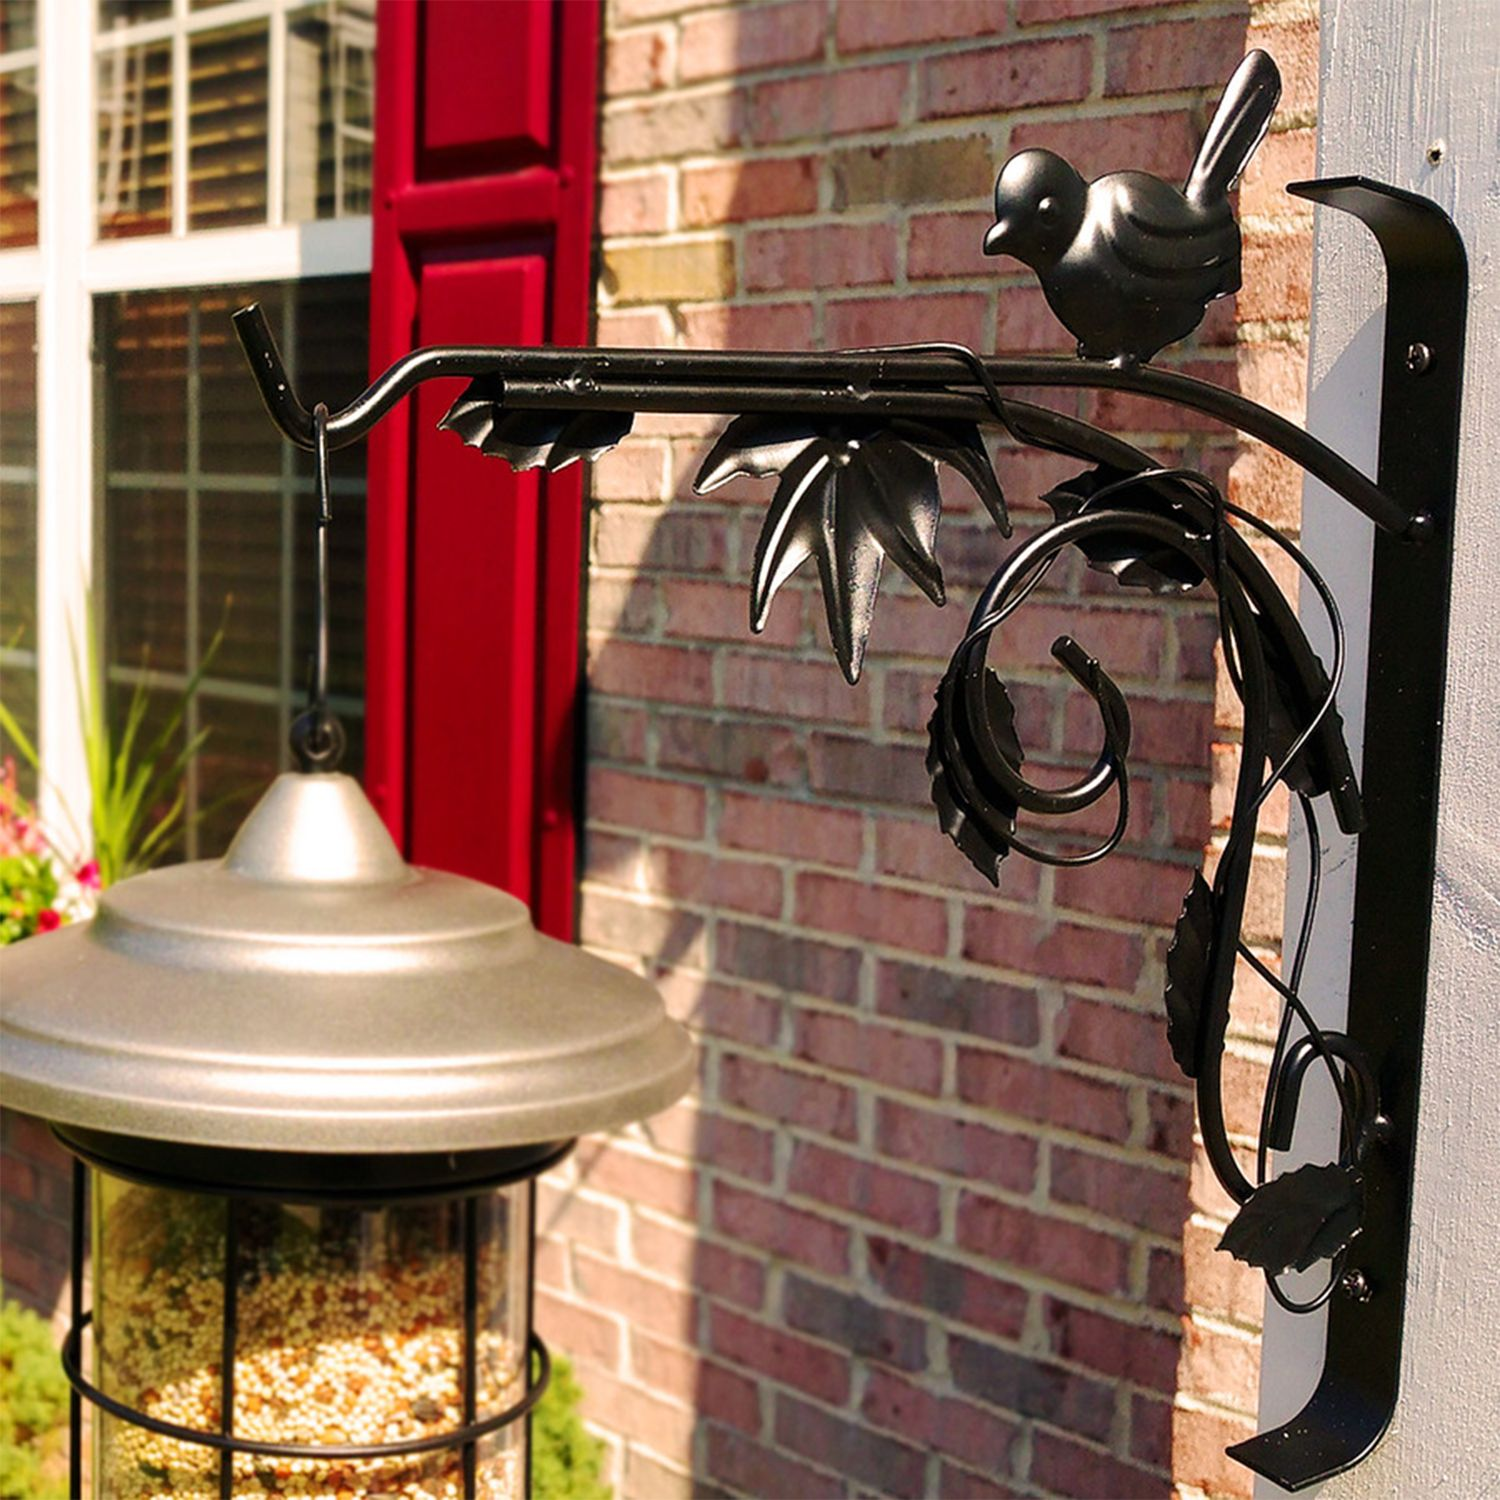 Finch bracket plant hooks plant stand with wheels